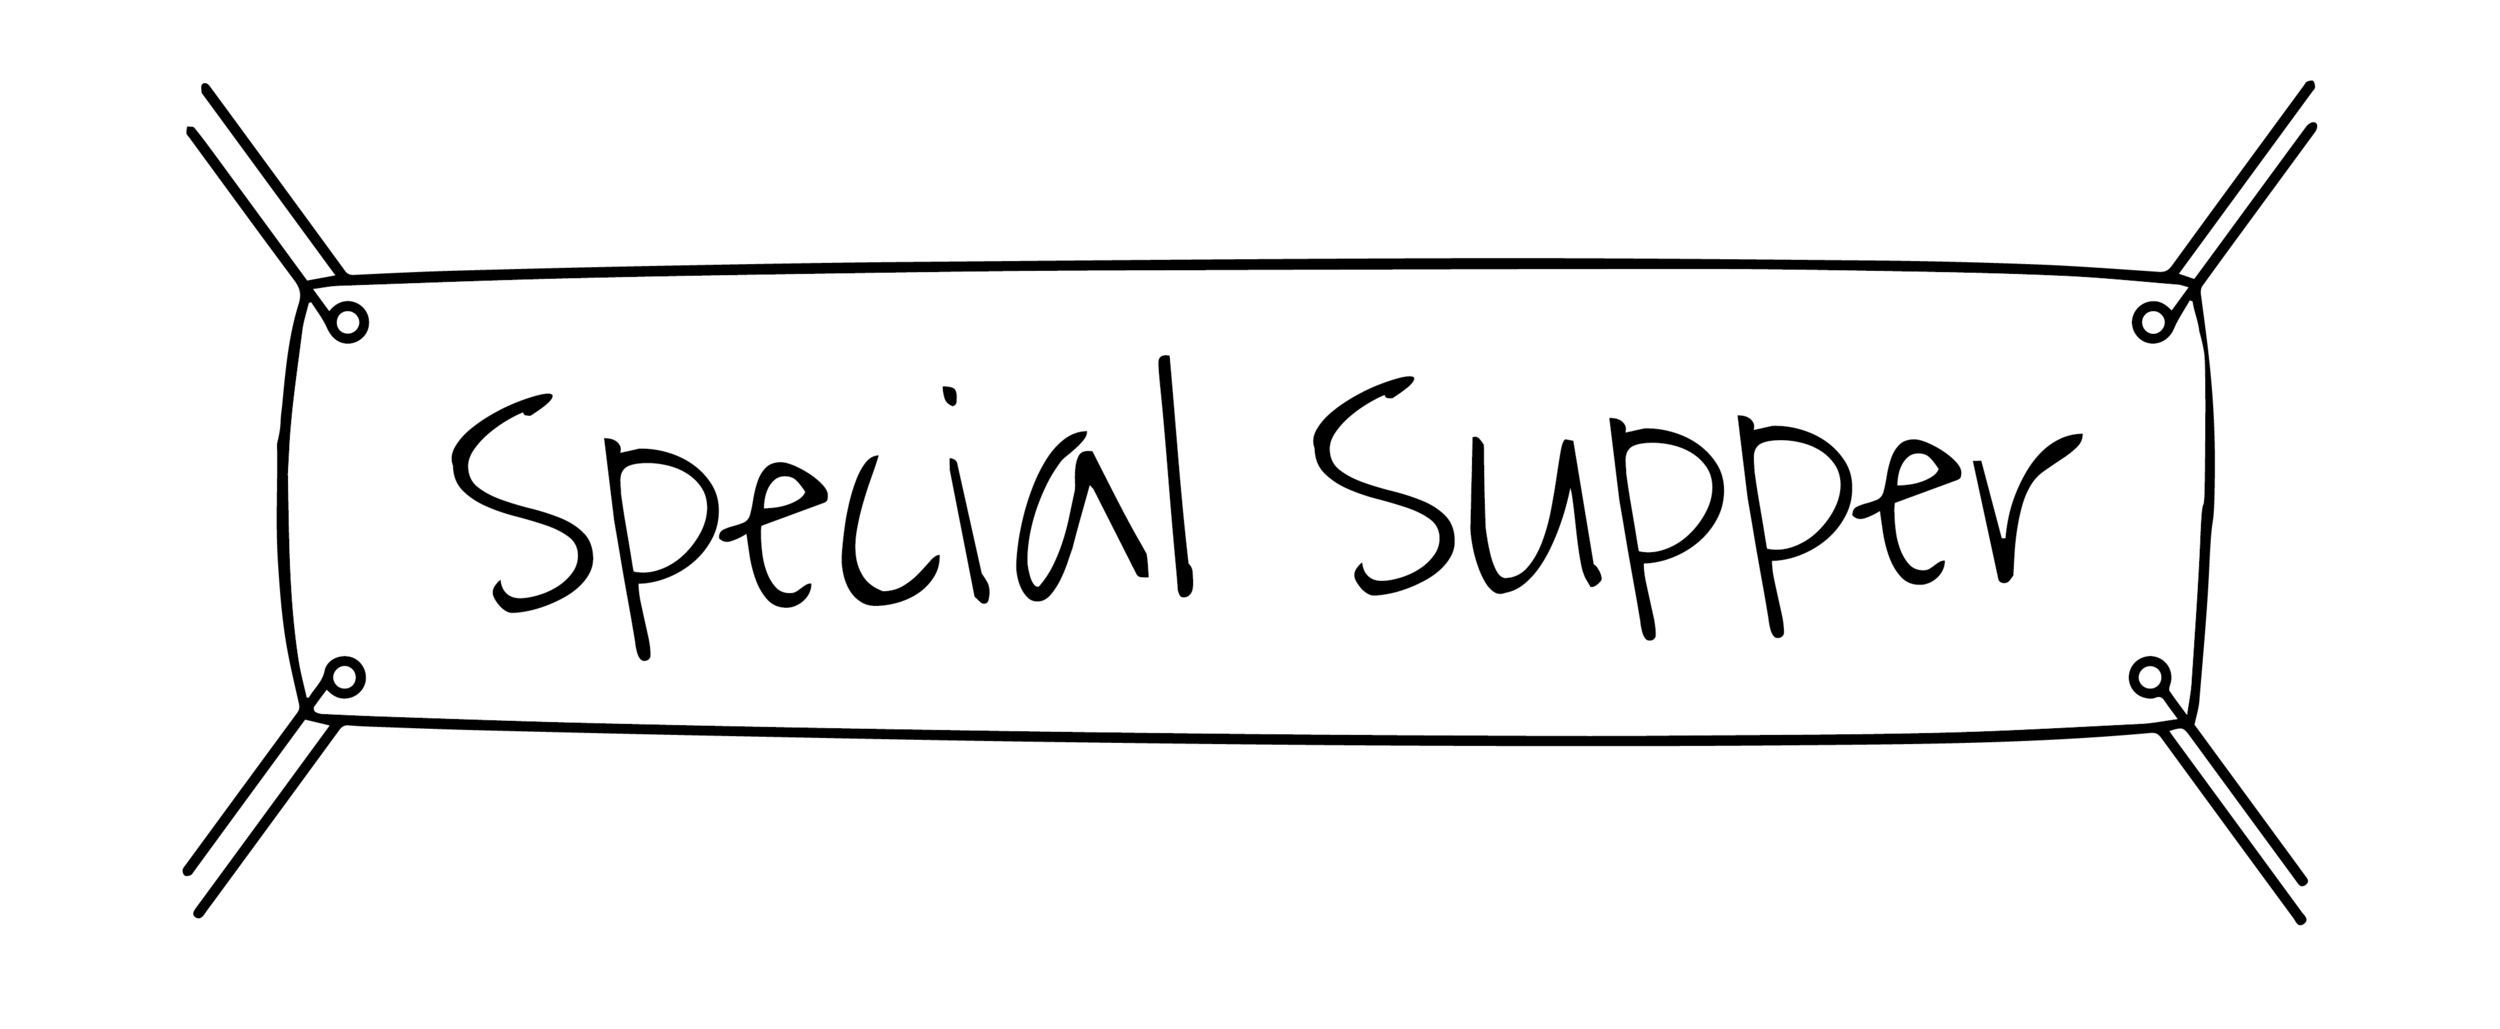 Special Supper-05.png